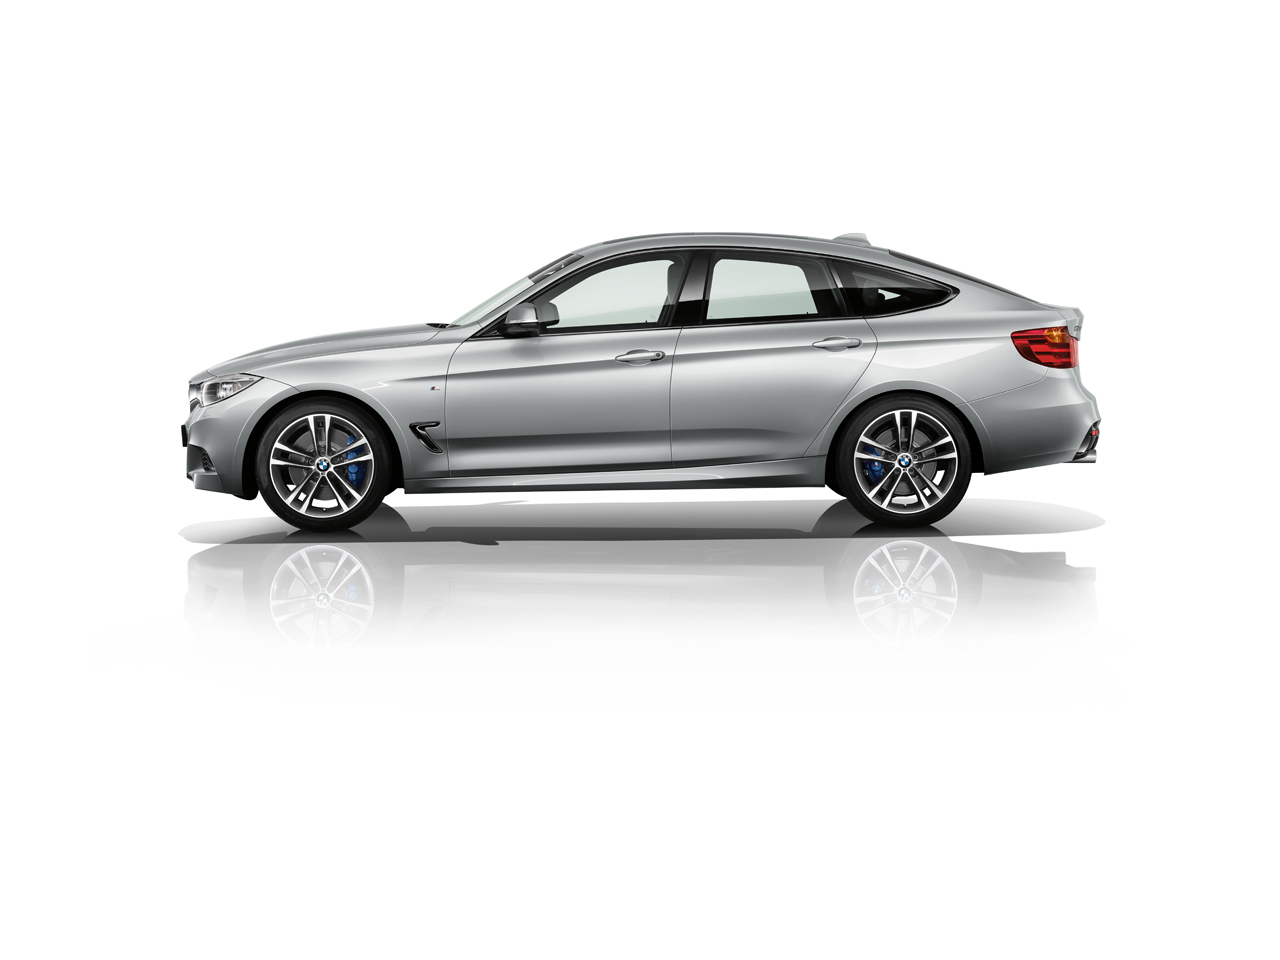 2014 bmw 3 series gran turismo has arrived don 39 t call it a wagon autoblog. Black Bedroom Furniture Sets. Home Design Ideas